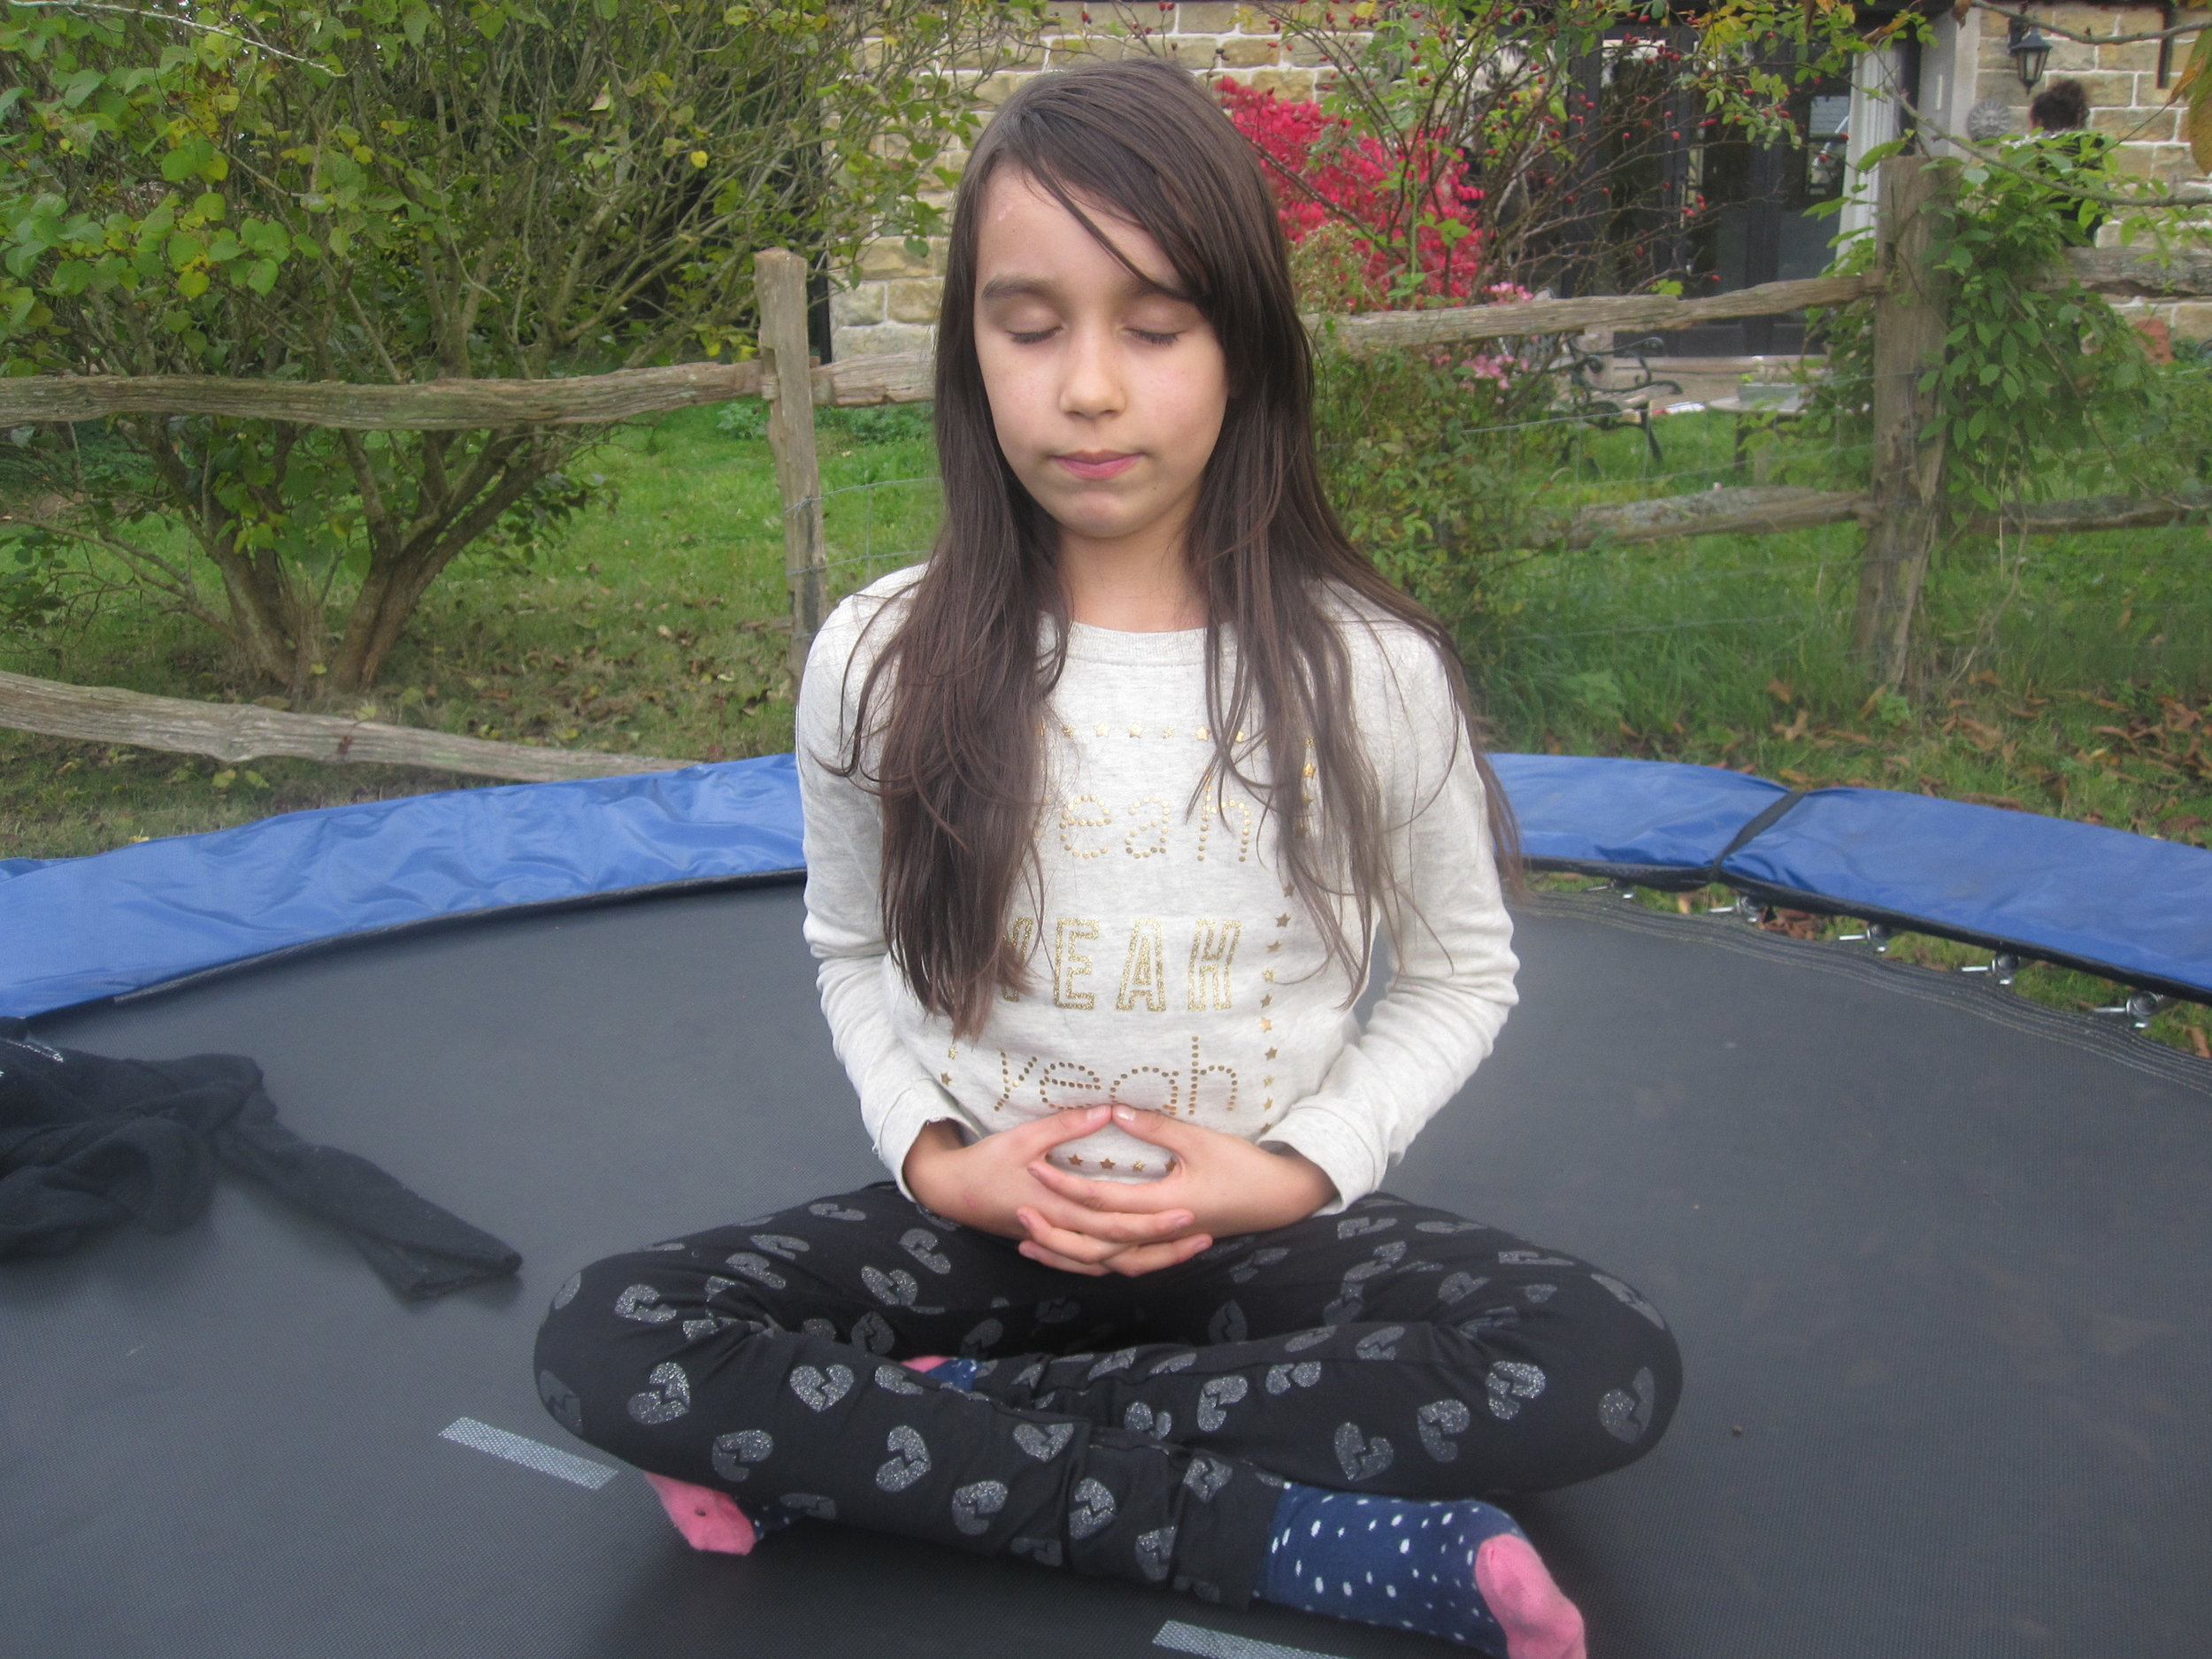 After trampolining, some Peace Button time